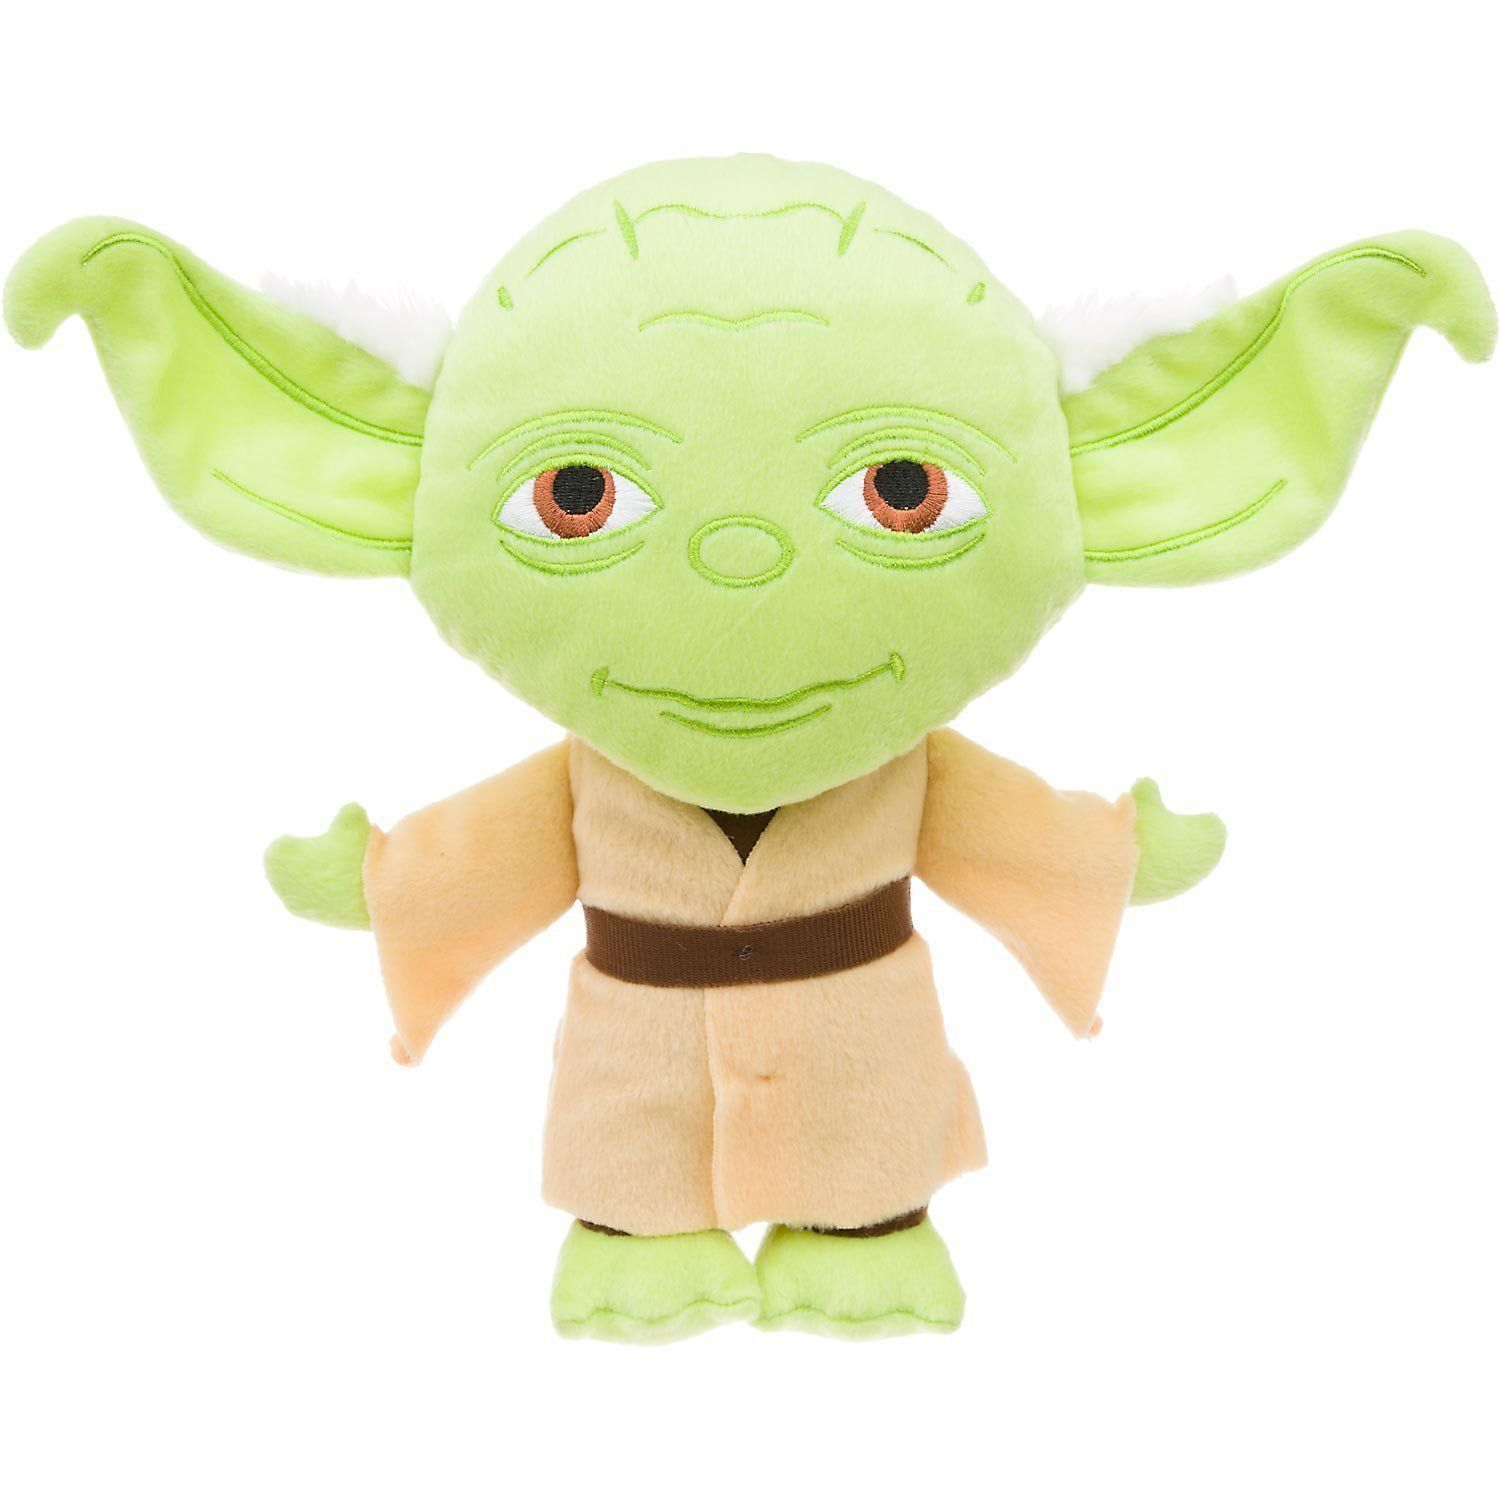 Star Wars Yoda Plush Dog Toy Special Product Just For You See